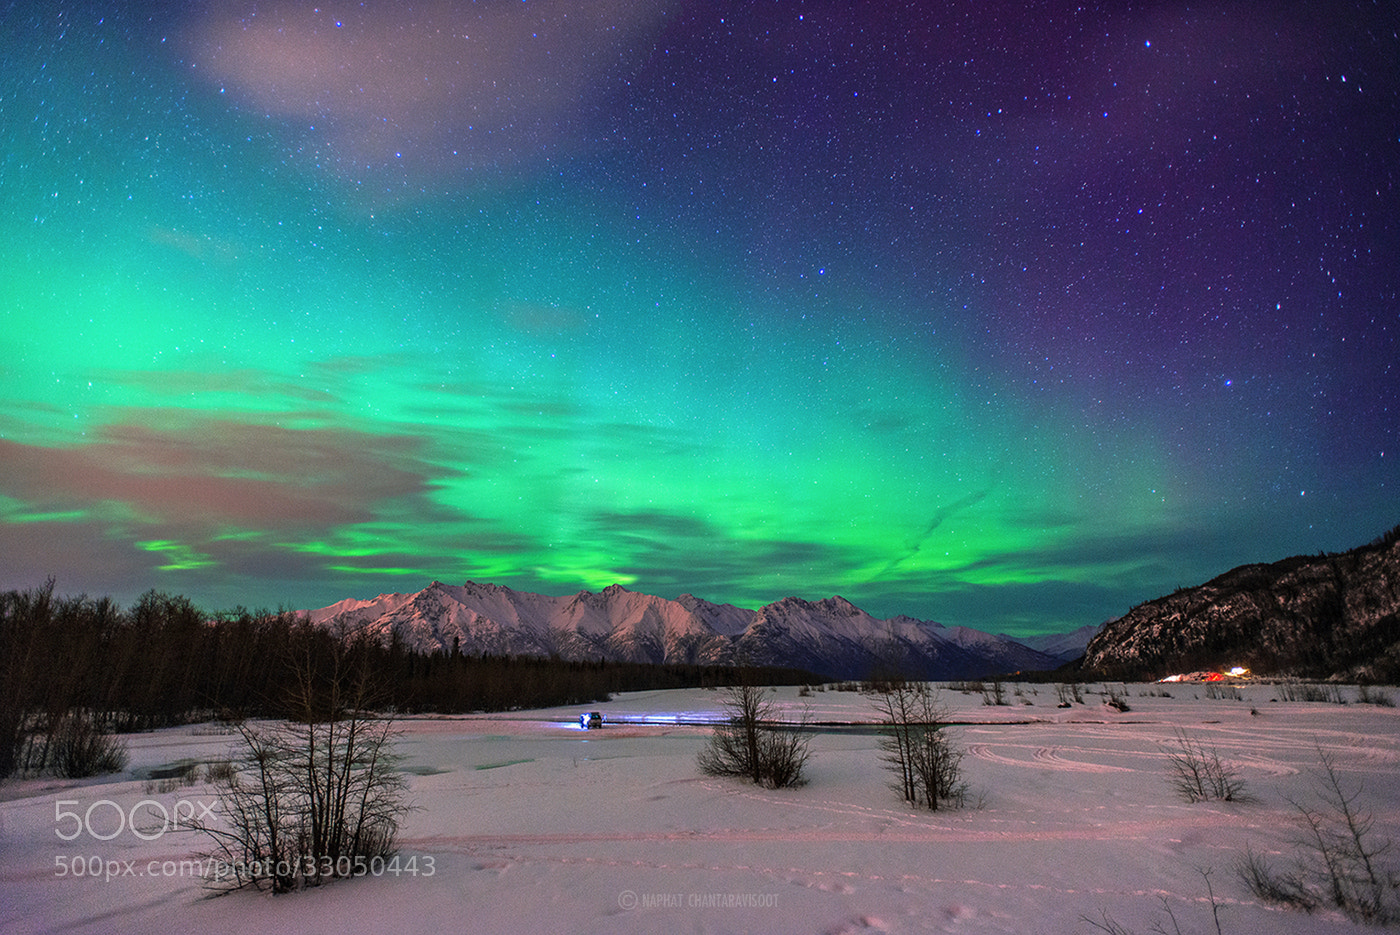 Photograph Green Sky  by Nae Chantaravisoot on 500px